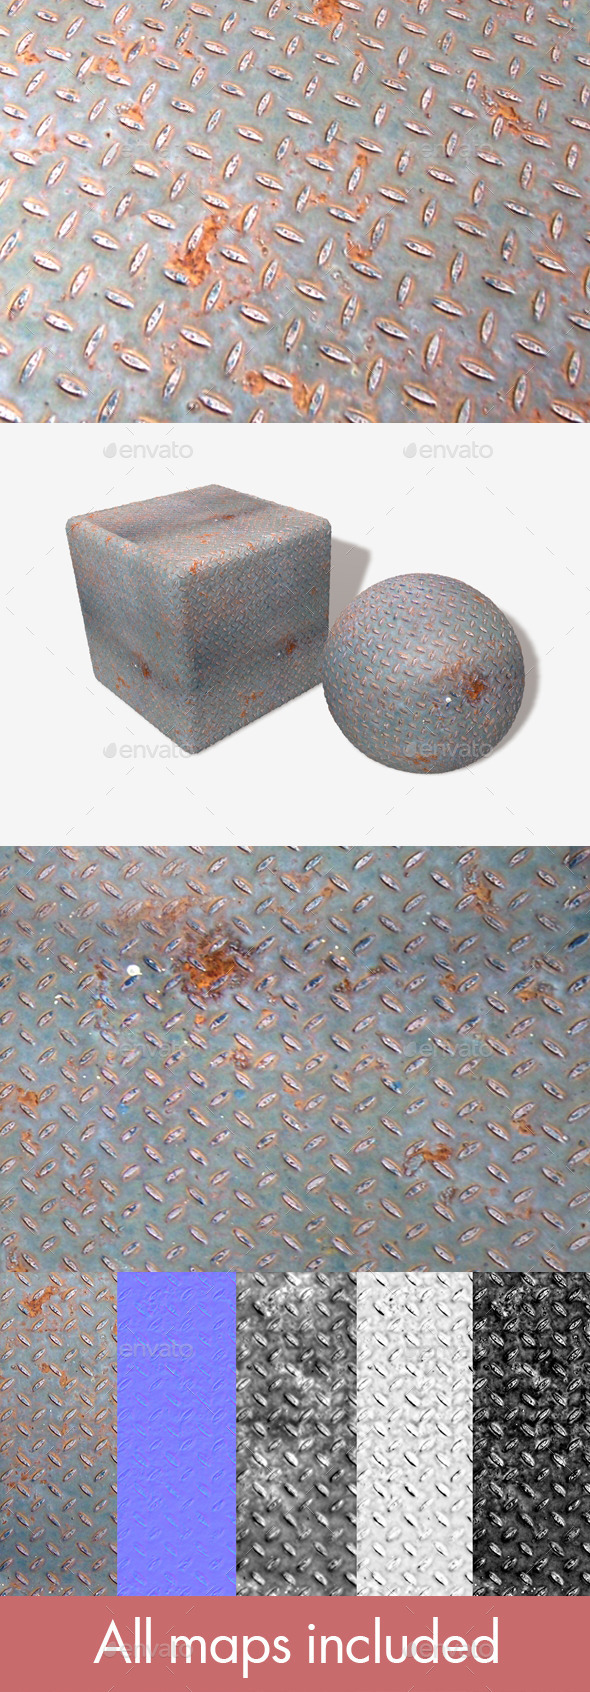 Rusty Metal Grid Seamless Texture - 3DOcean Item for Sale